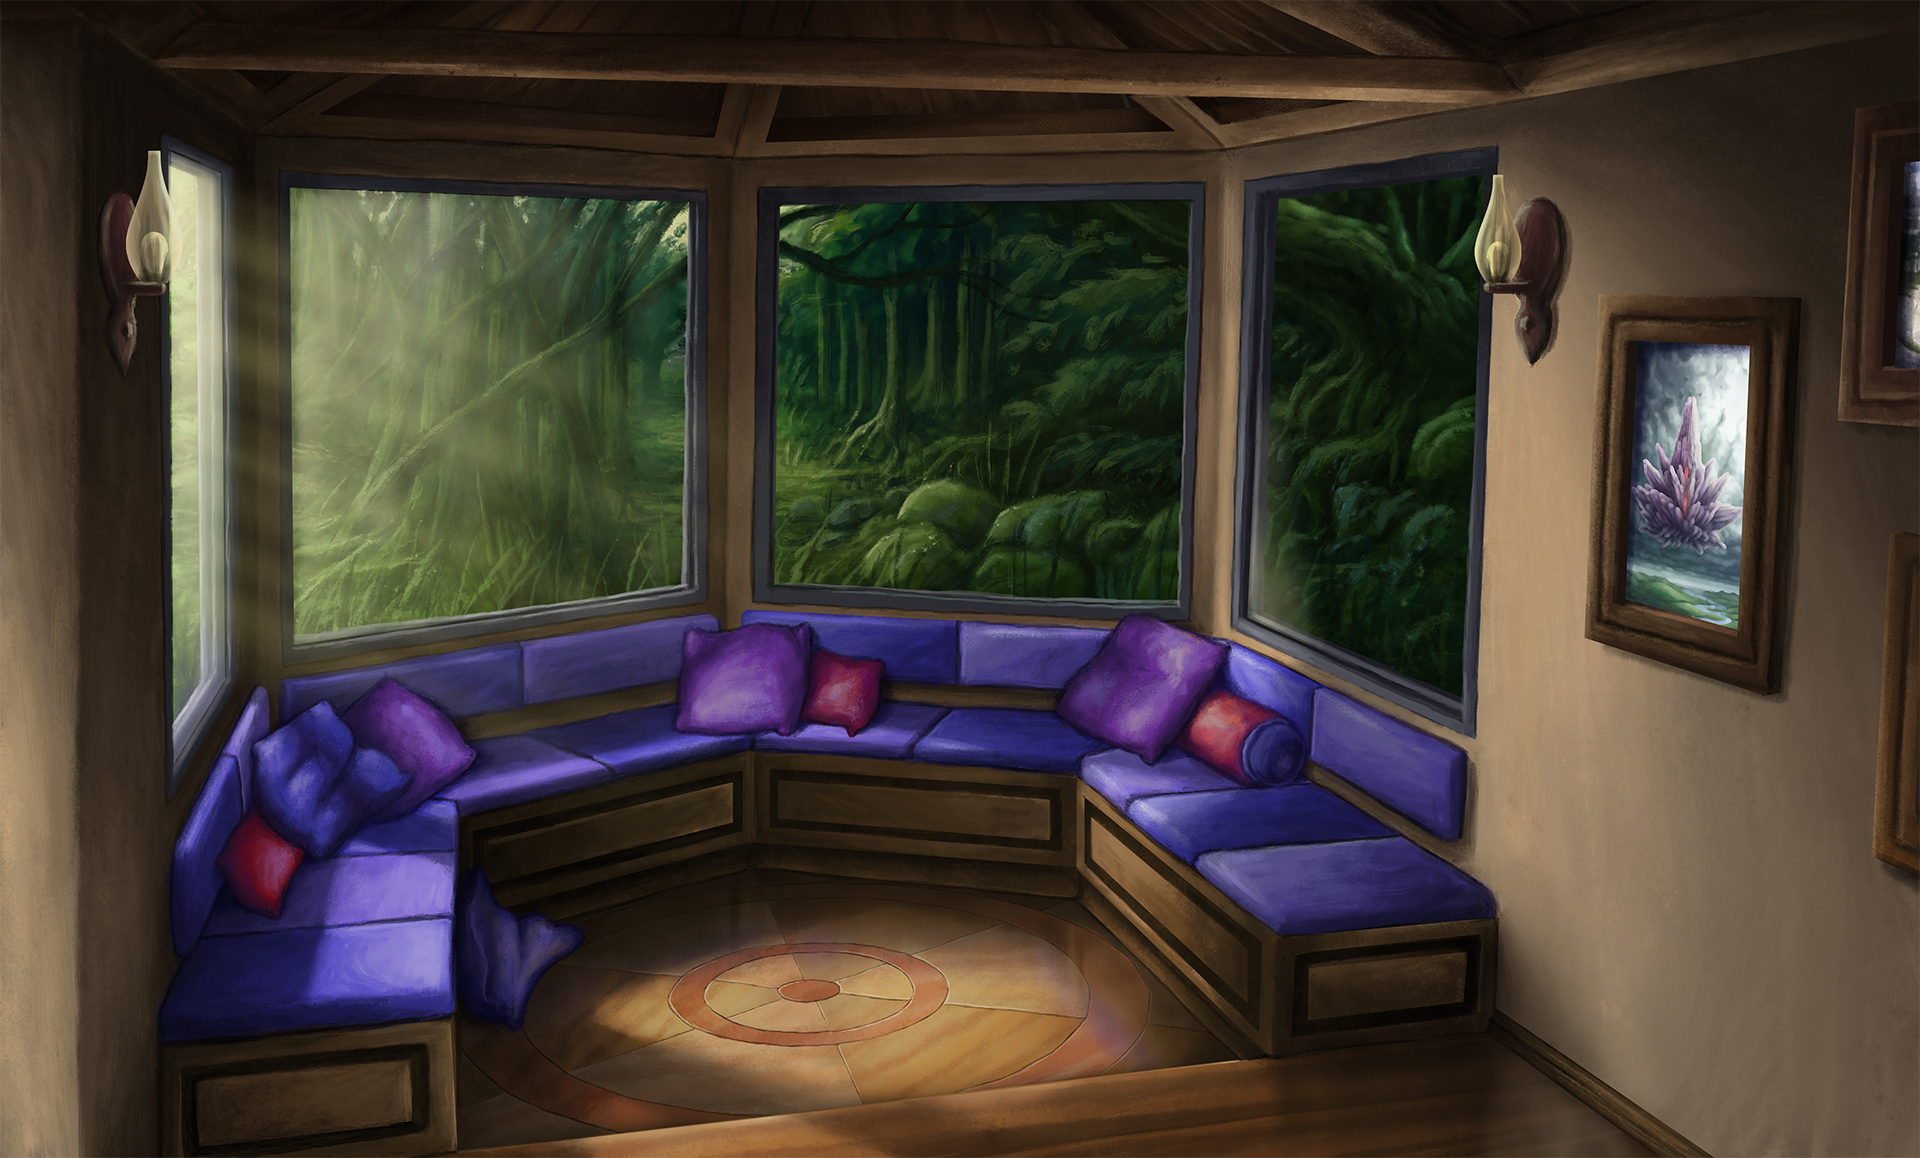 Sunroom Complete by Benjamin-the-Fox